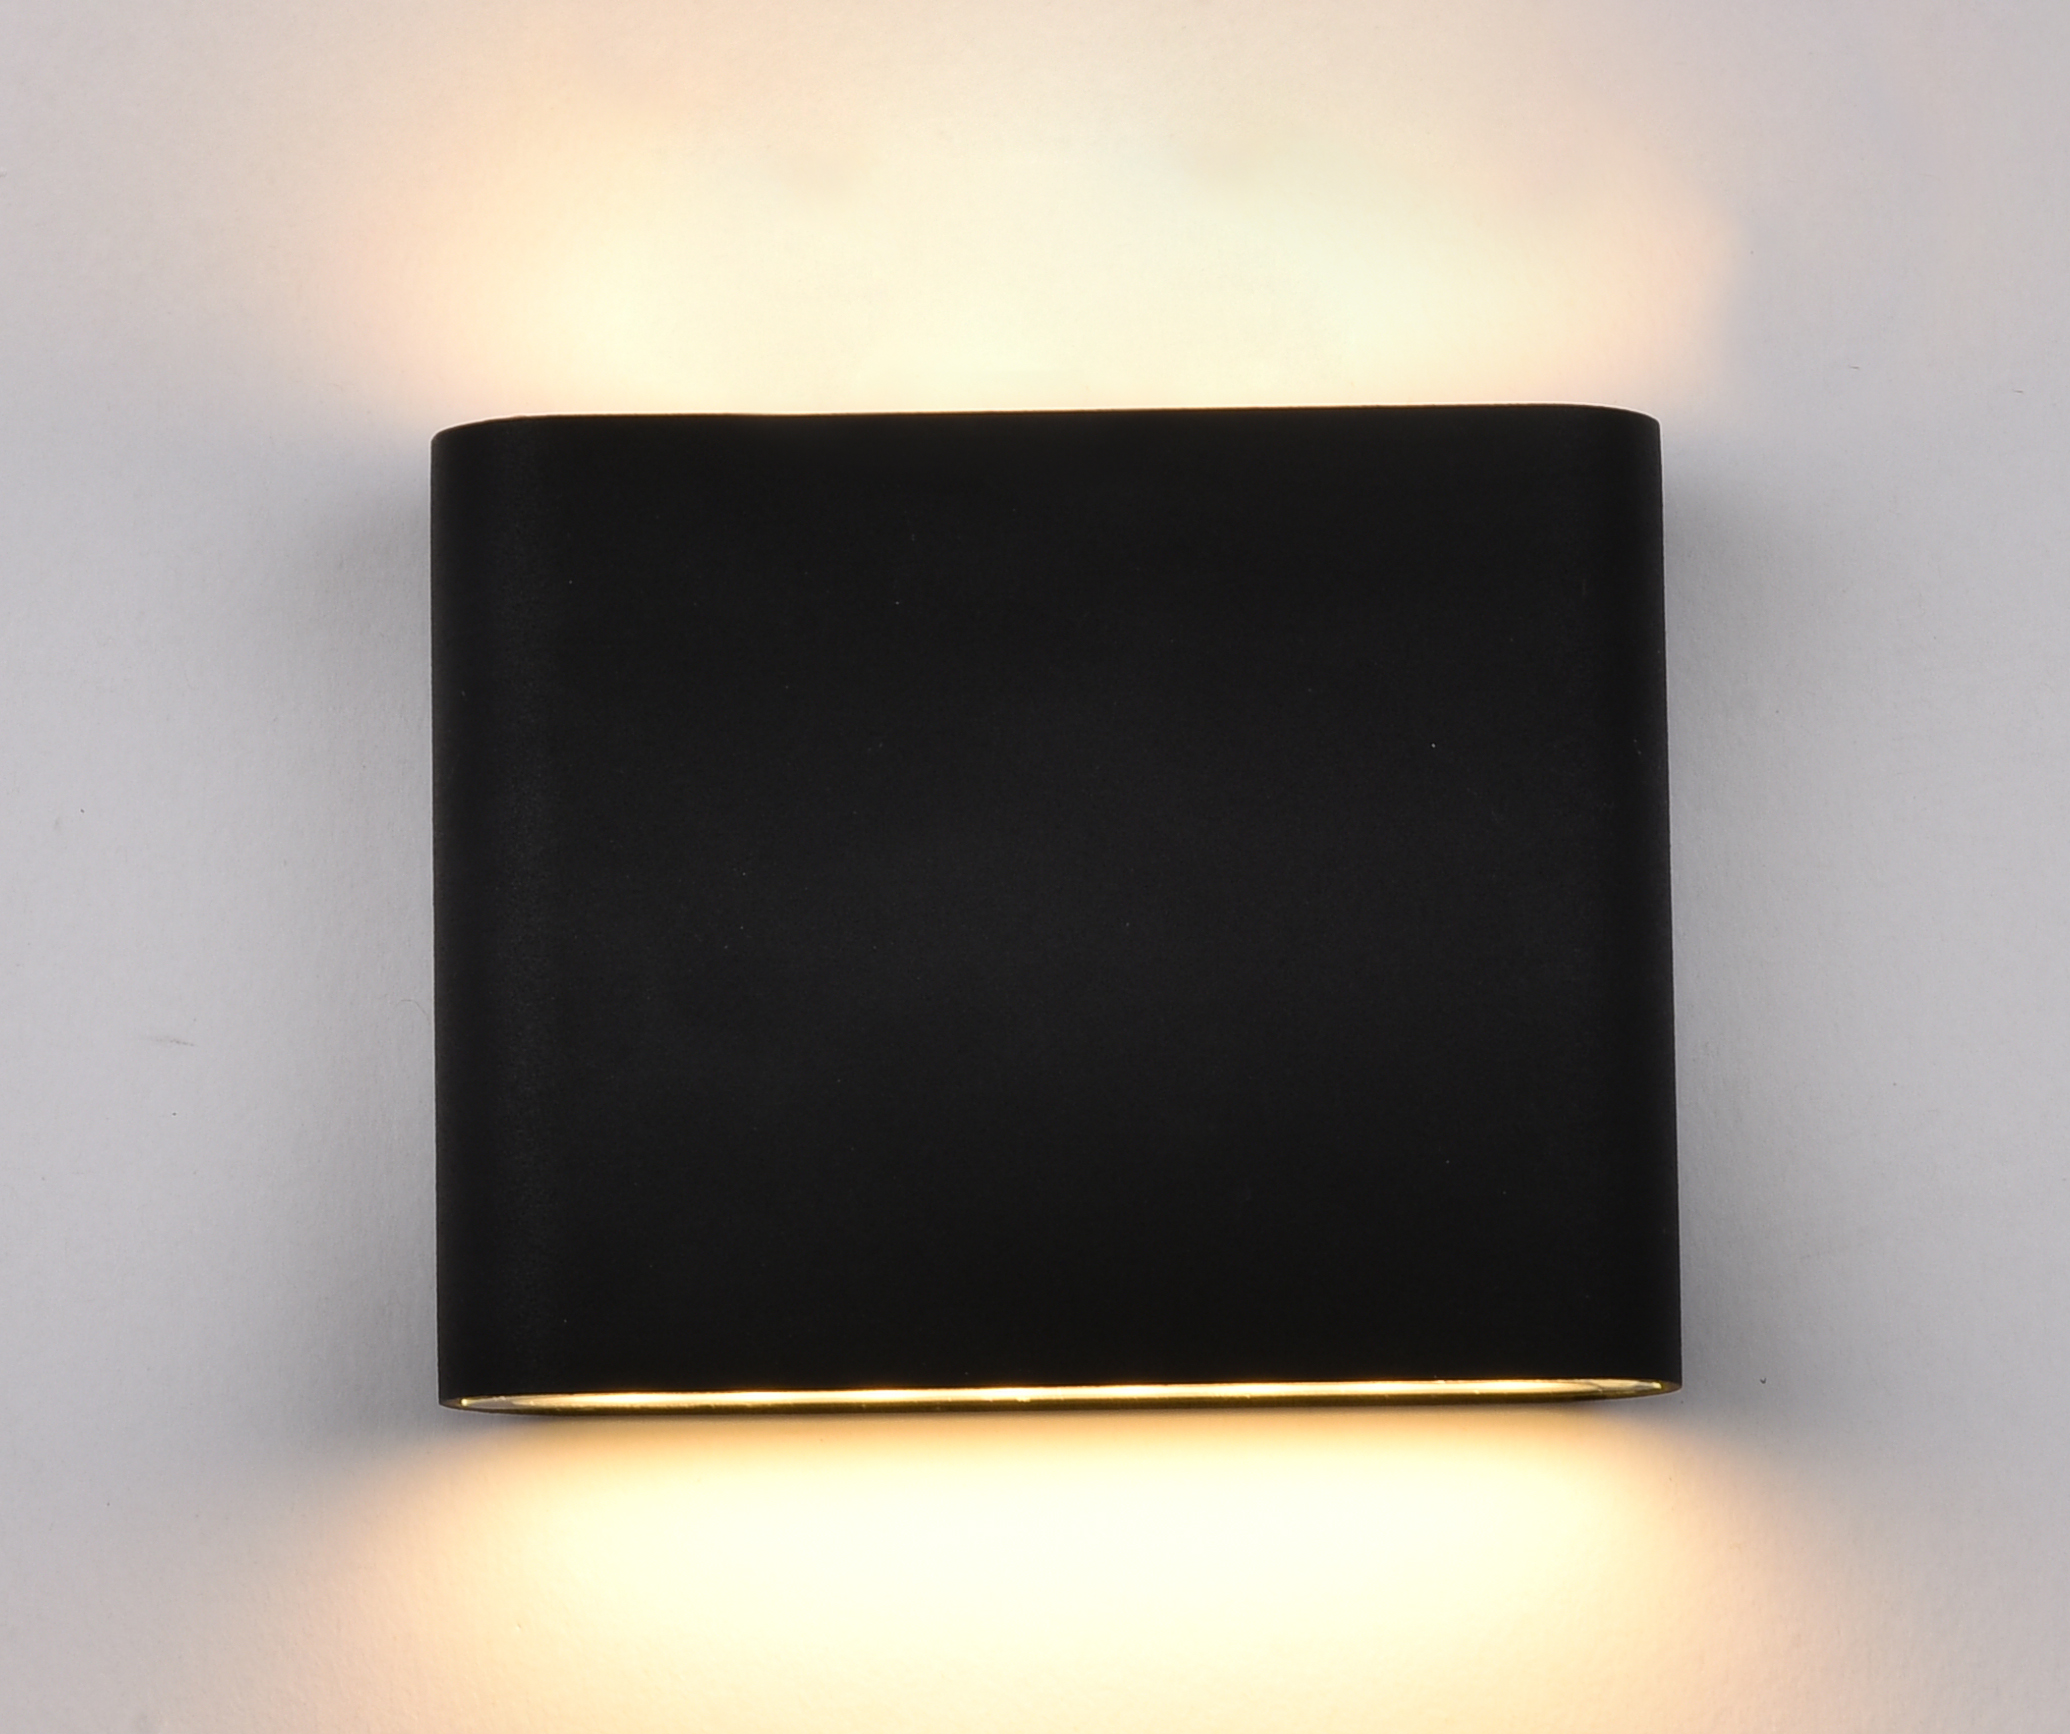 Led Wall Lights Price In Pakistan: LED WALL LAMP 18131